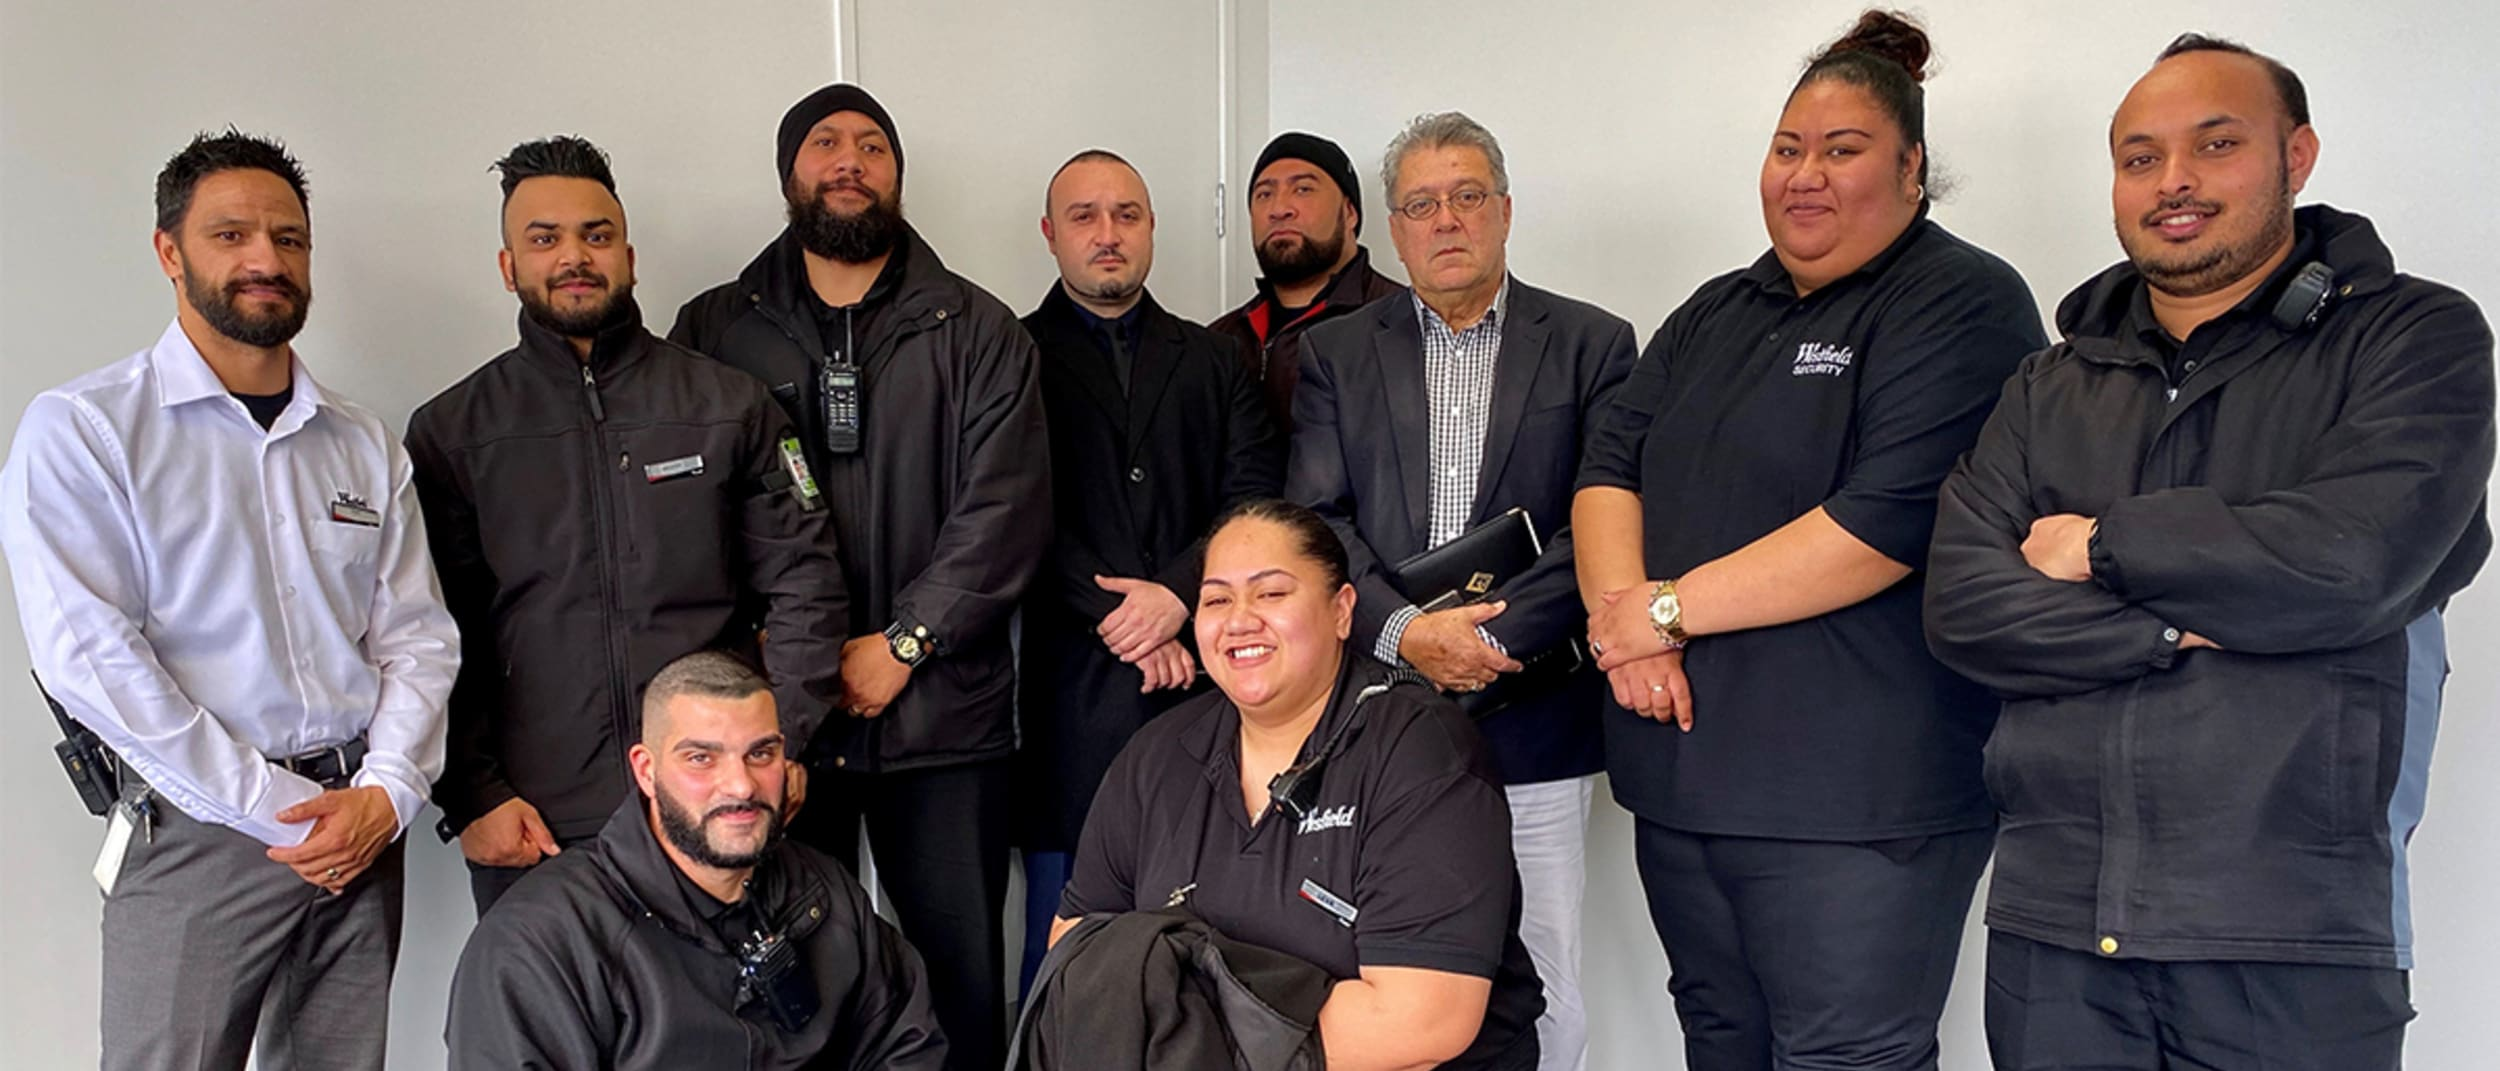 Westfield Manukau celebrates guards on Security Officers' Day